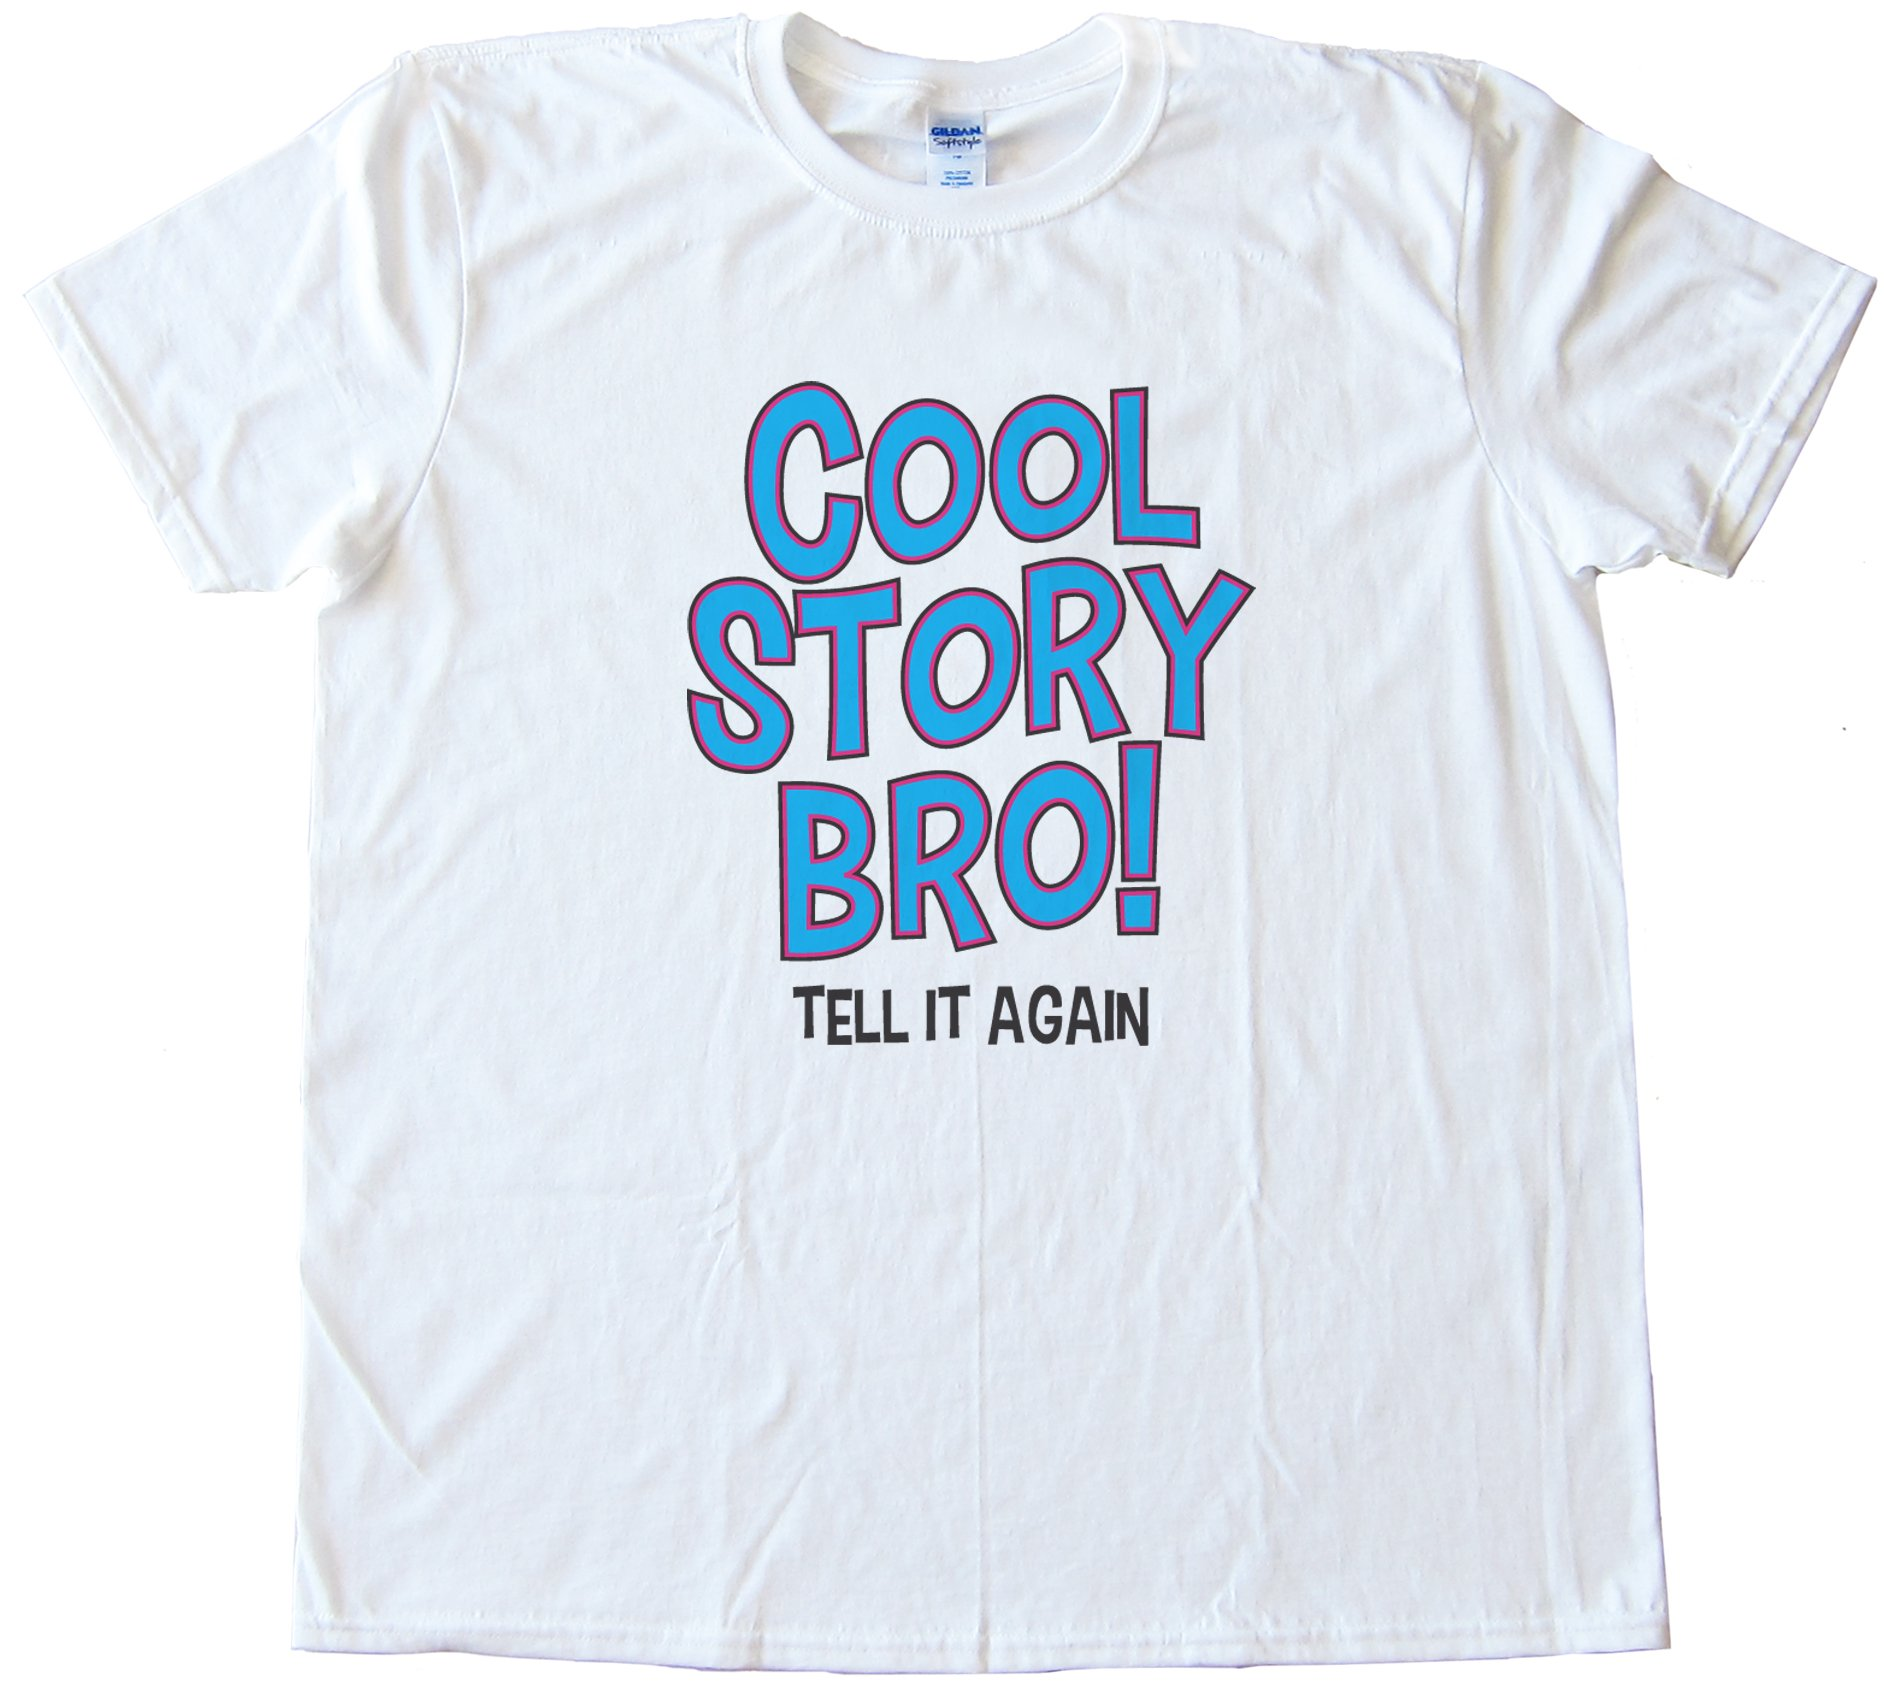 Cool Story Bro! Tell It Again! Tee Shirt